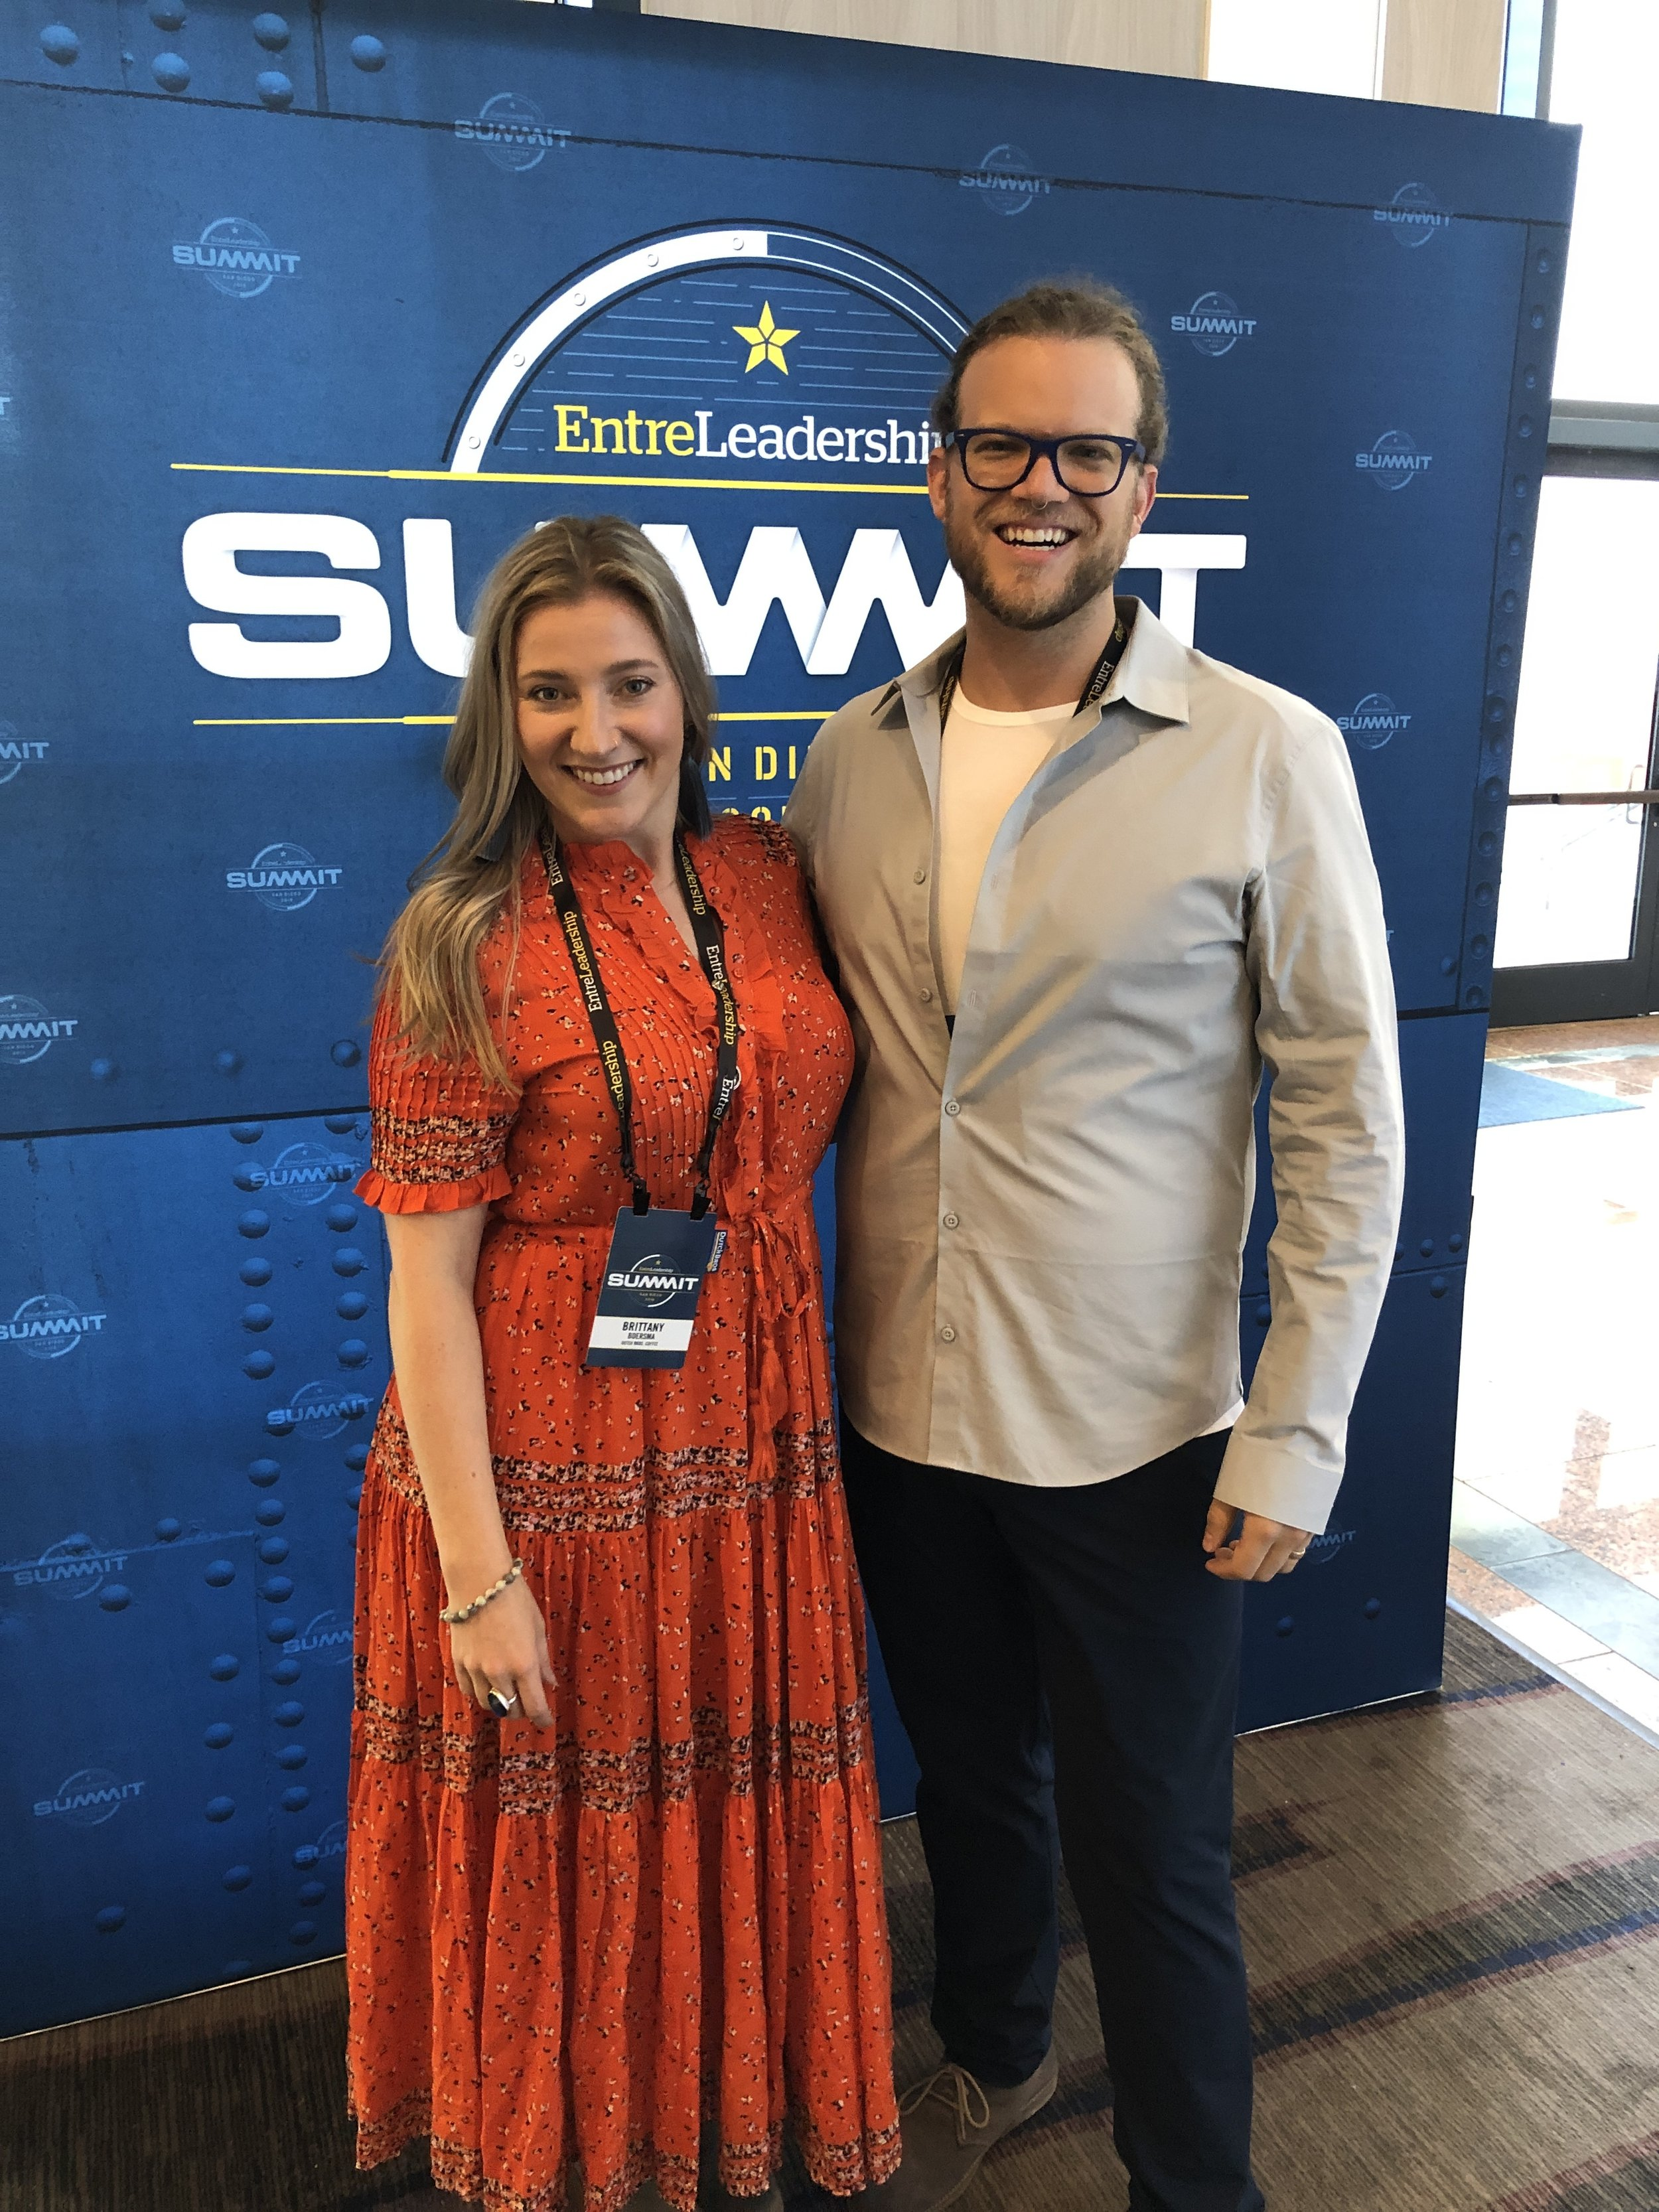 Brit and Jonah at the EntreLeadership Summit 2019 in San Diego!